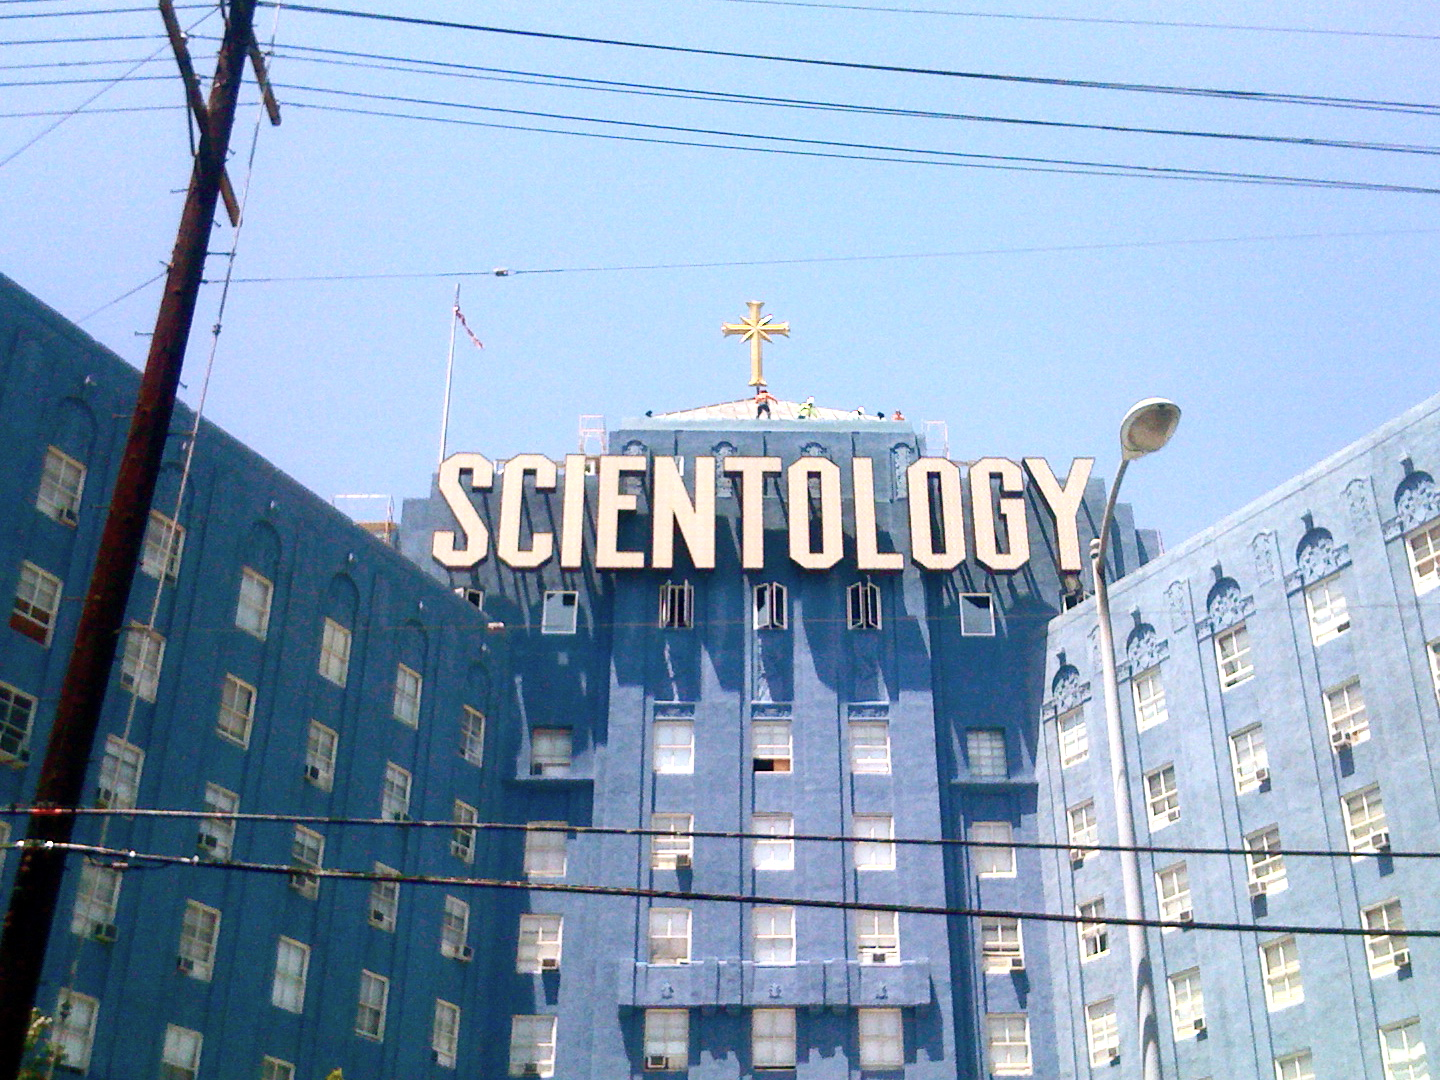 EC: Scientology Founder L. Ron Hubbard Really Hated Cereal Boxes